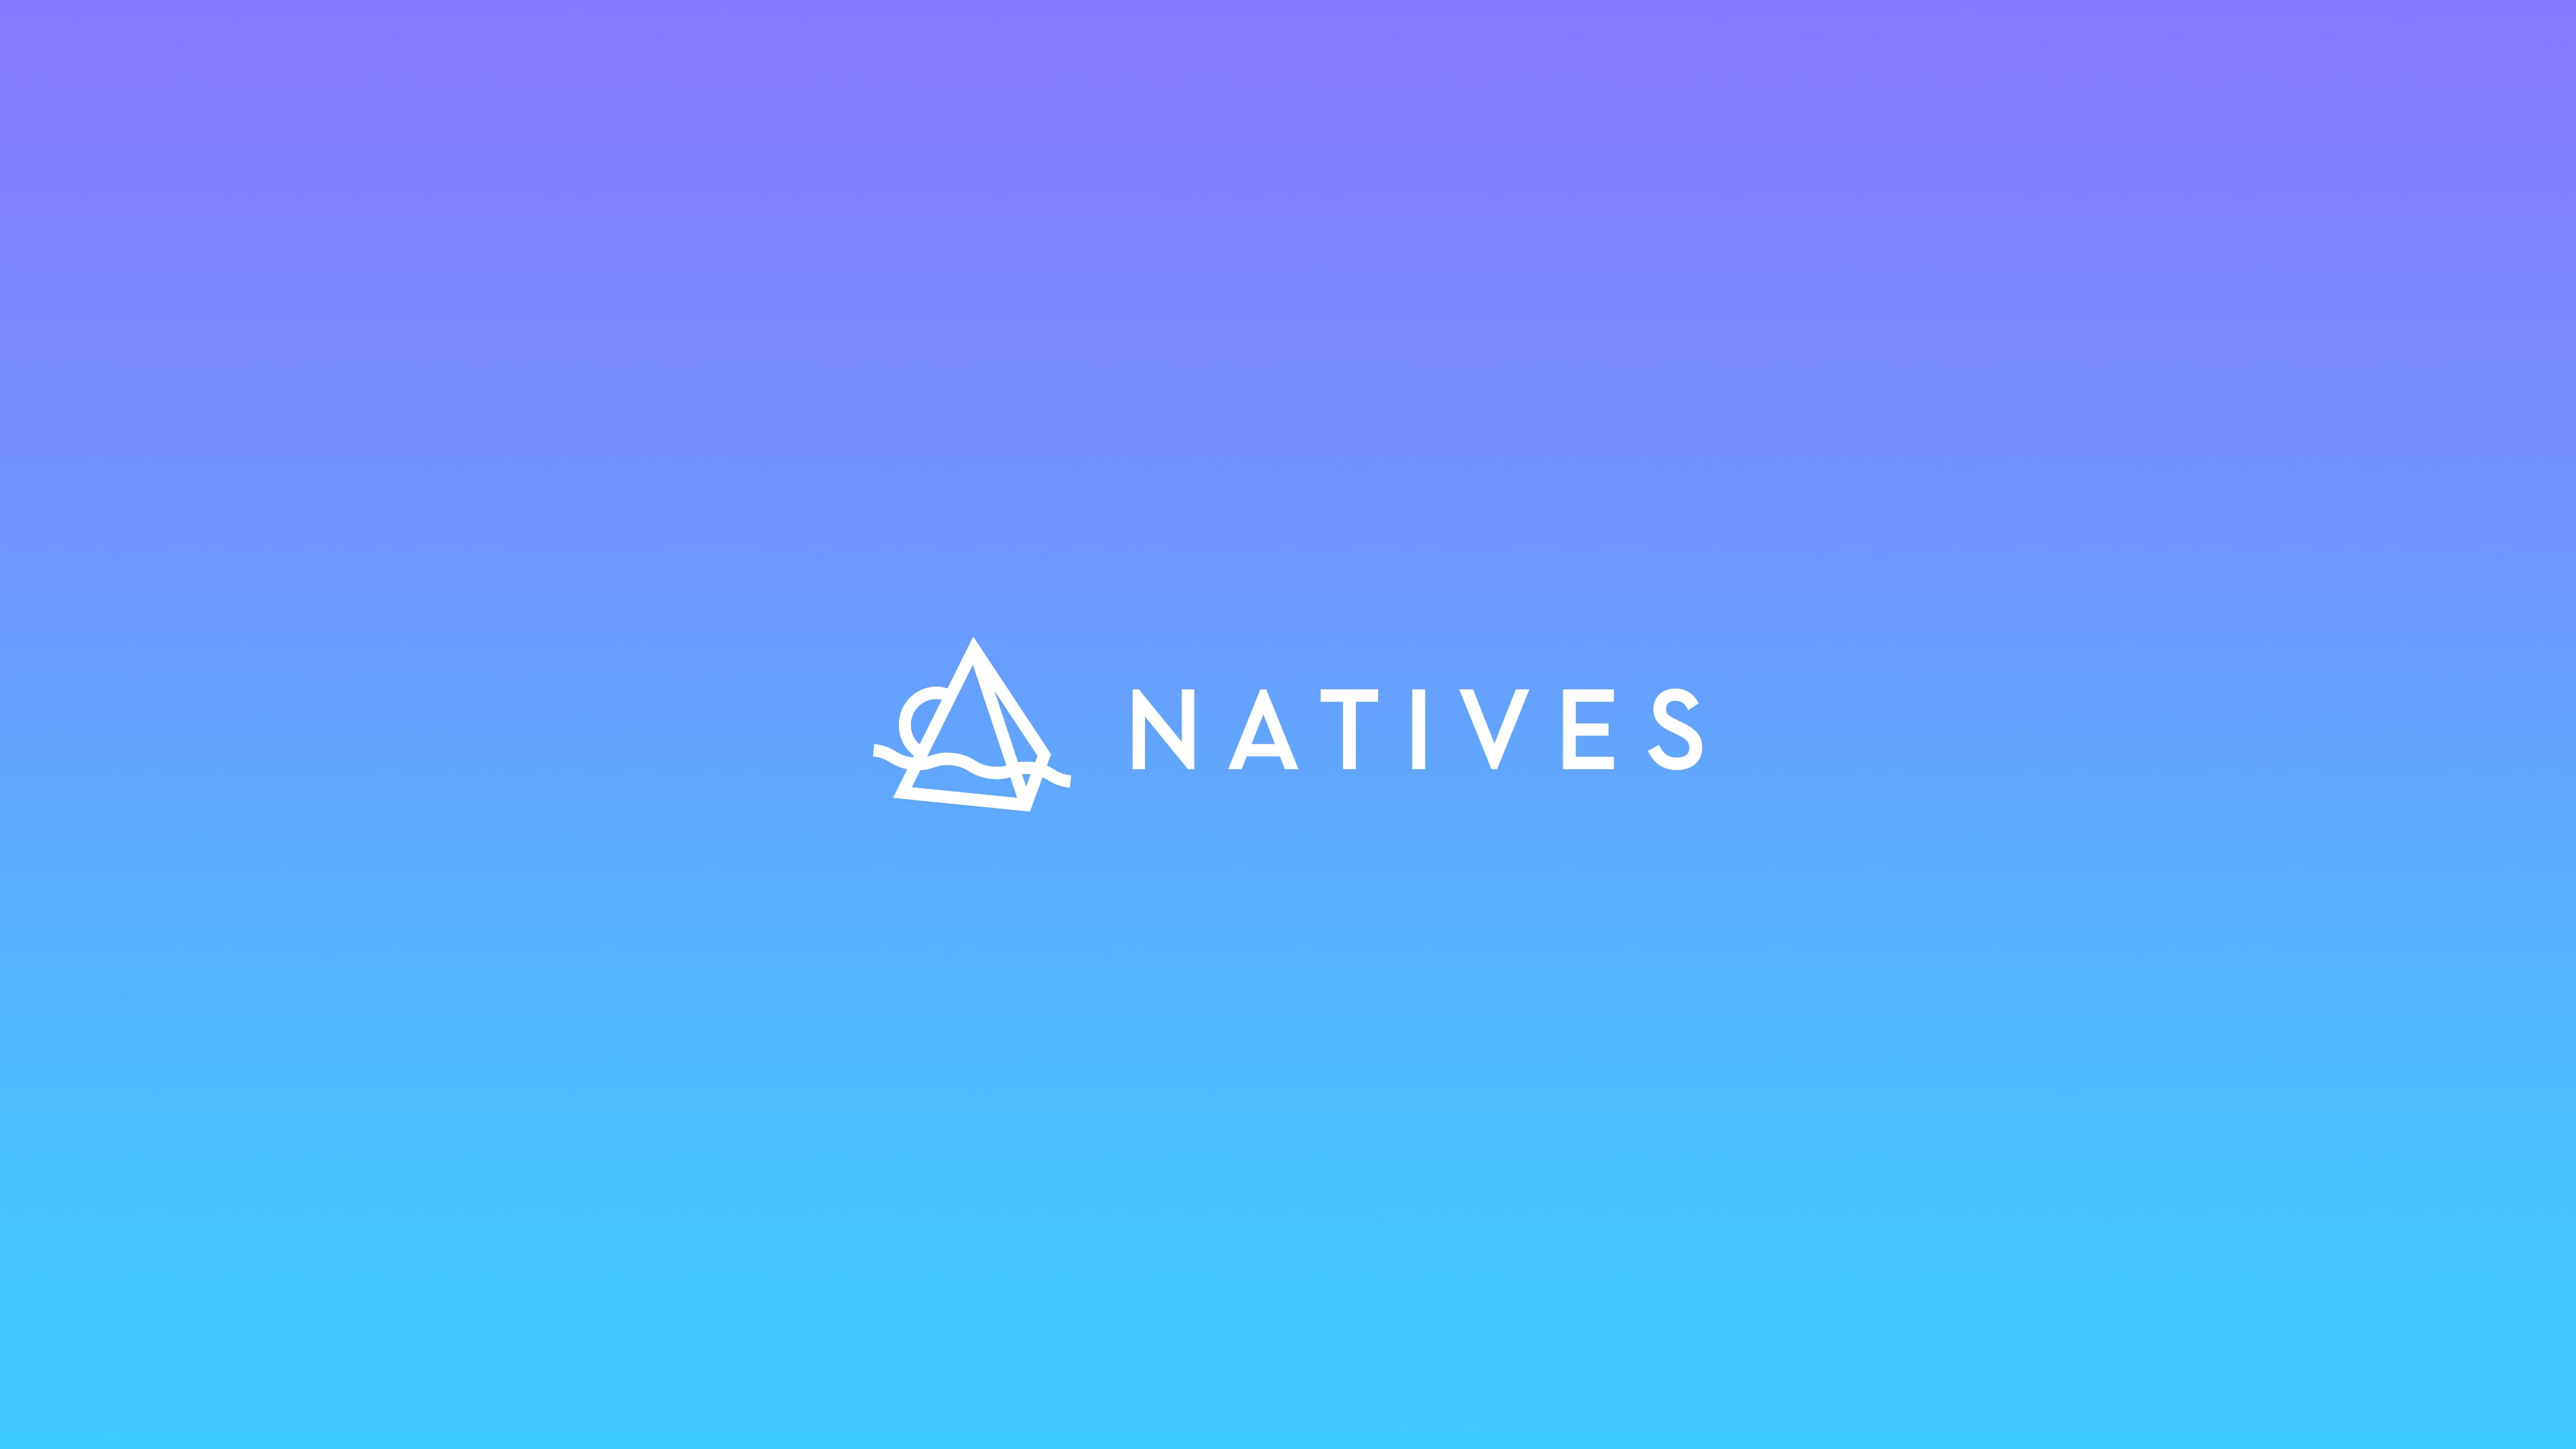 Natives branding